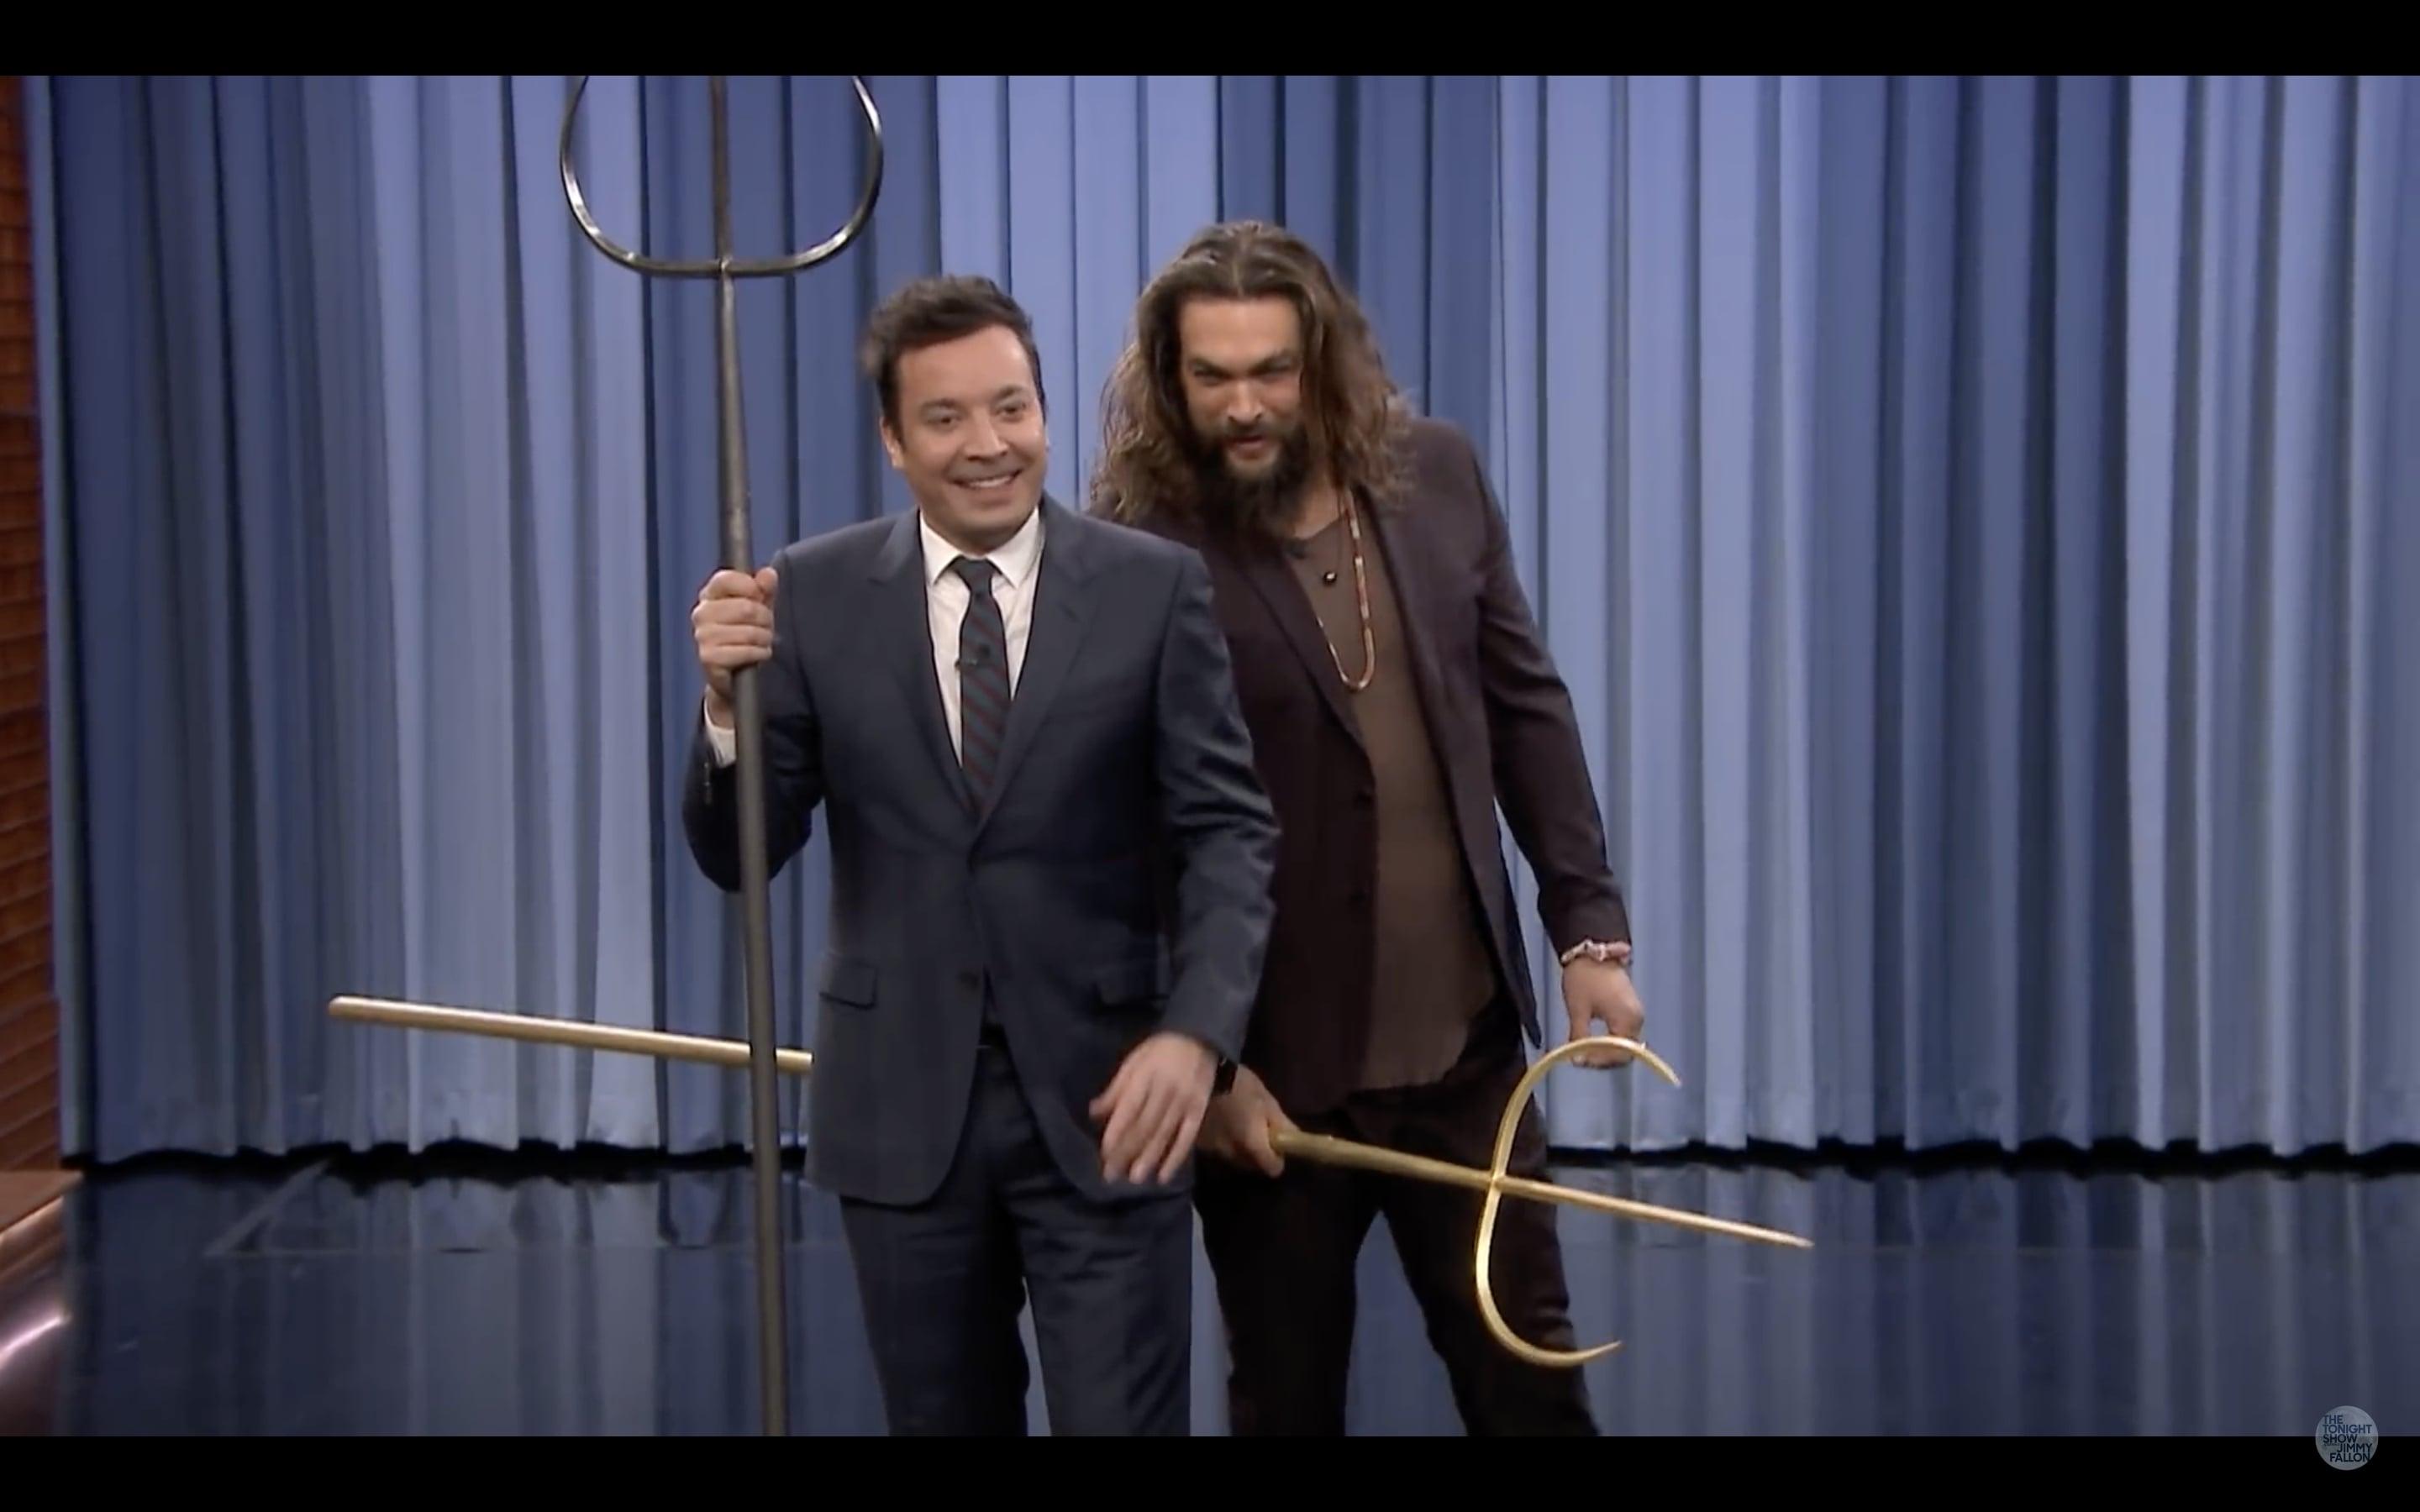 Watch 'Aquaman' Jason Momoa's Trident-Throwing Competition on 'Fallon'